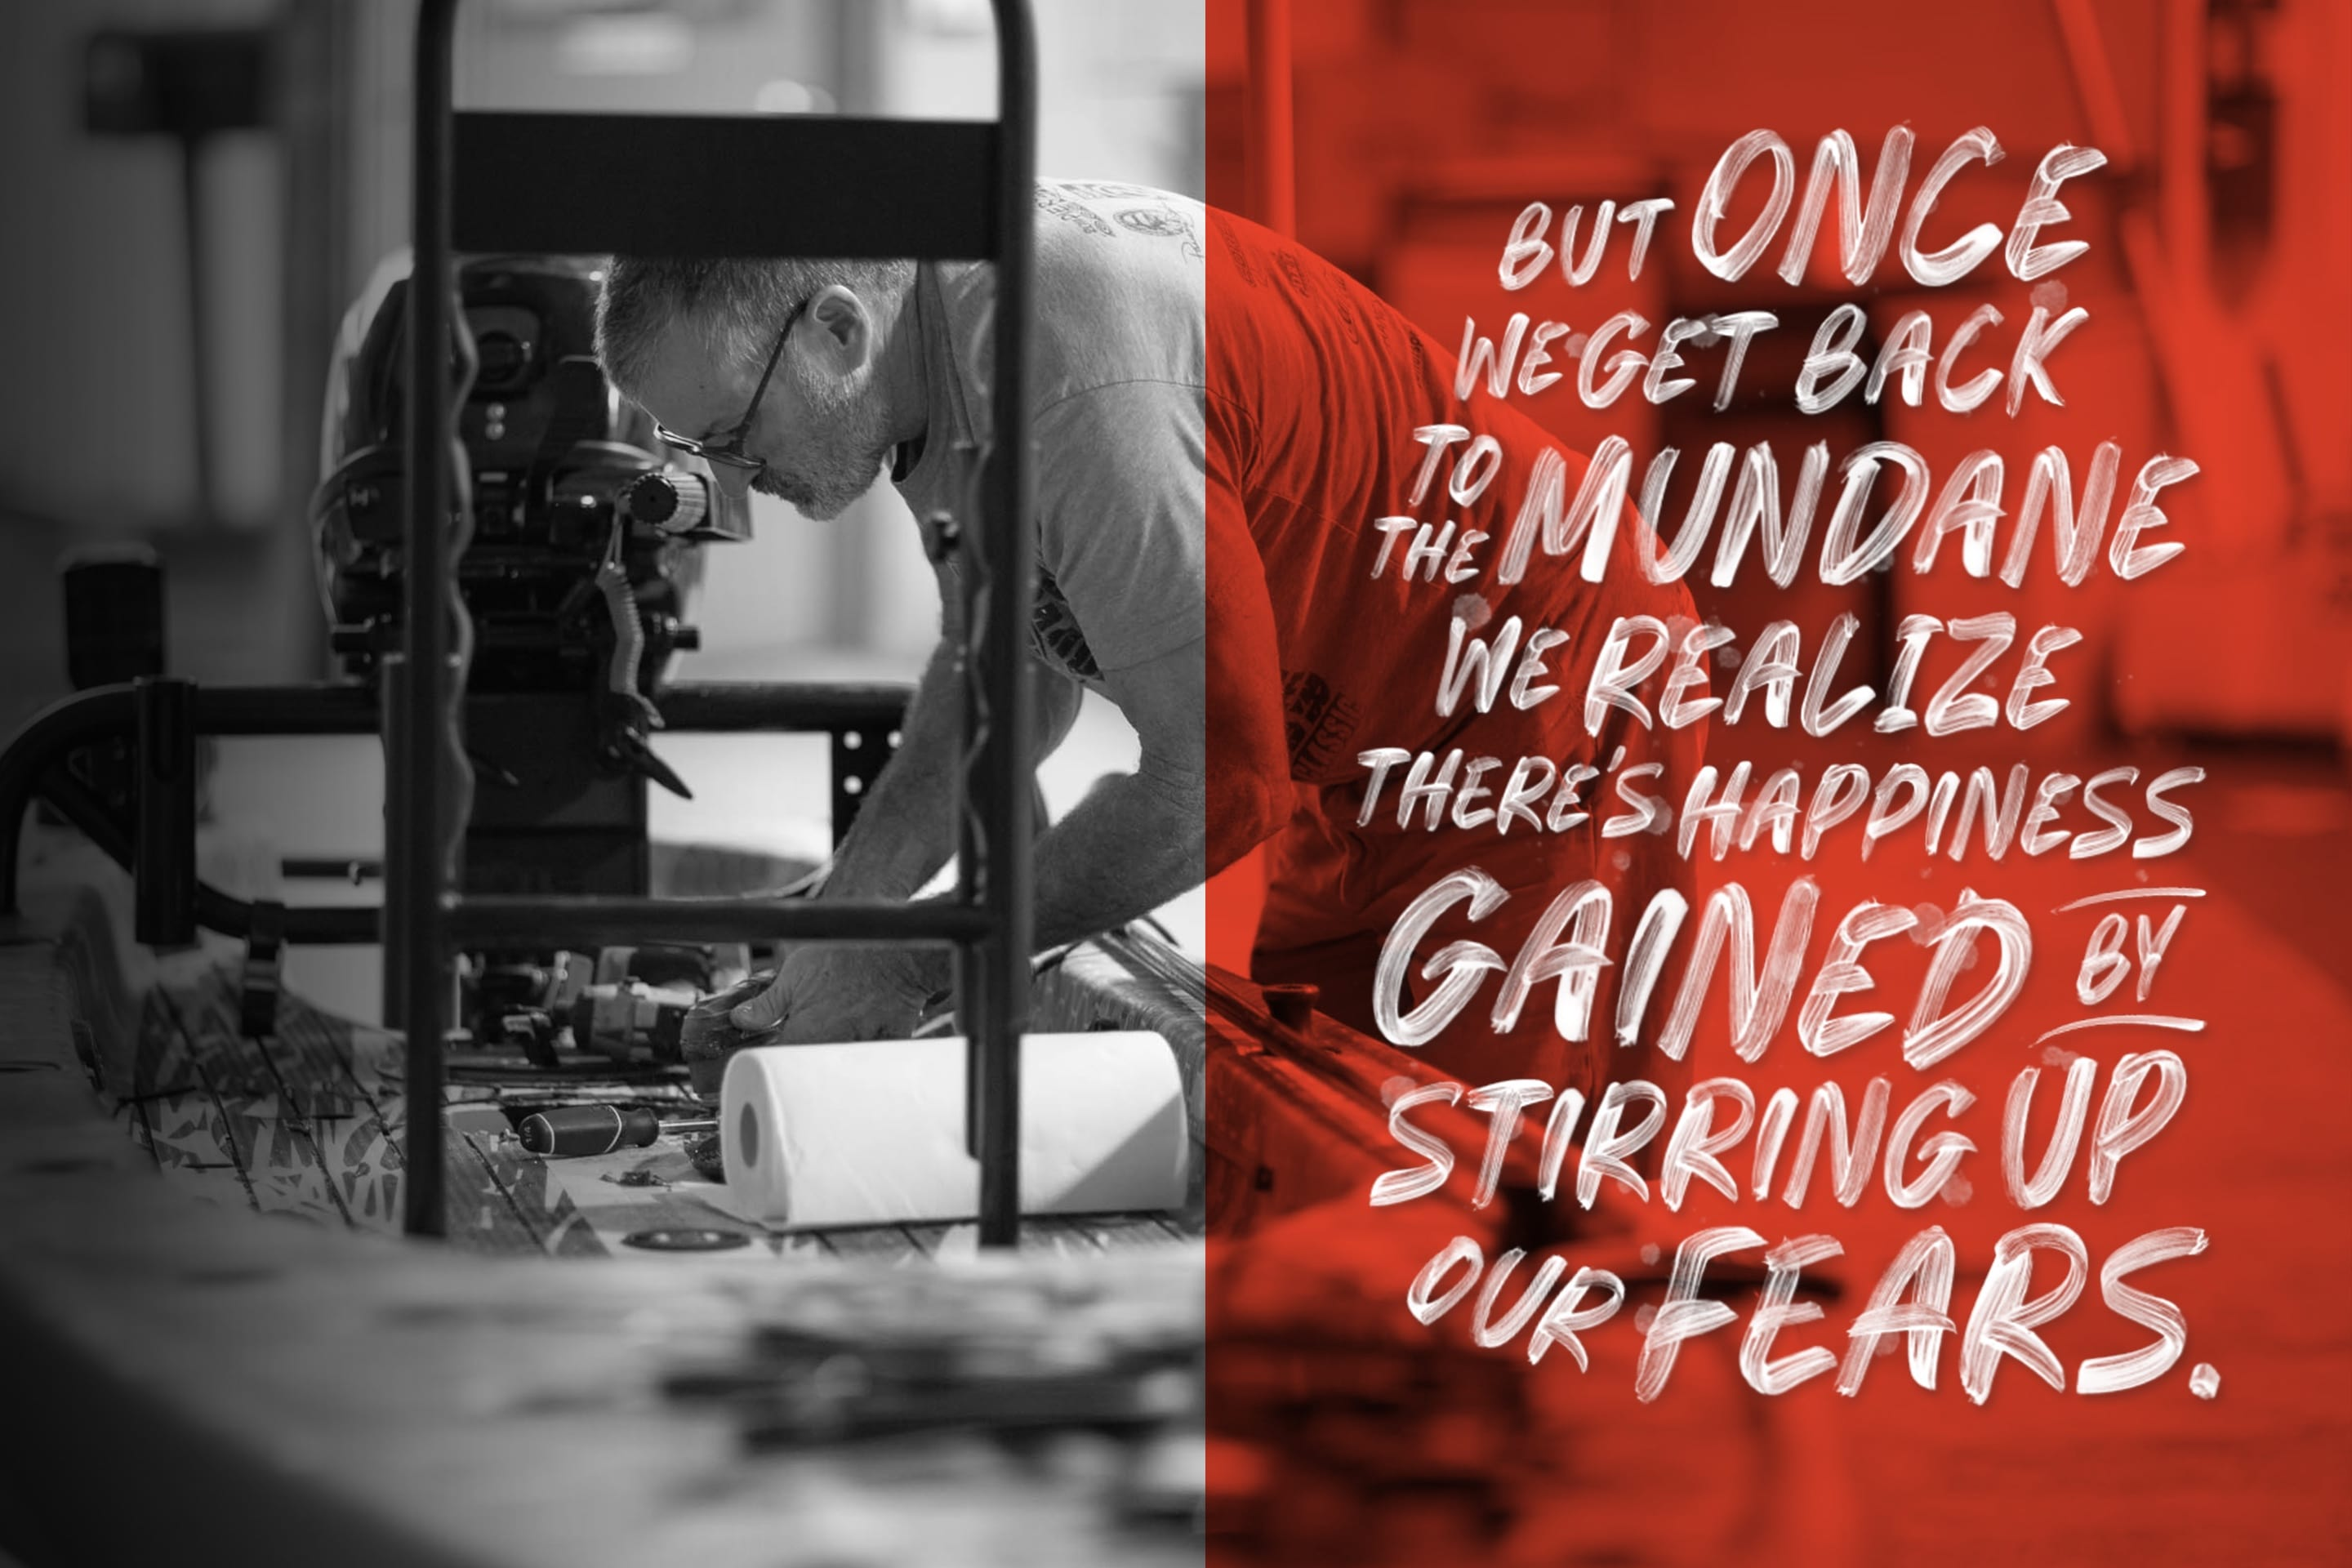 But once we get back to the mundane we realize there's happiness gained by stirring up our fears.